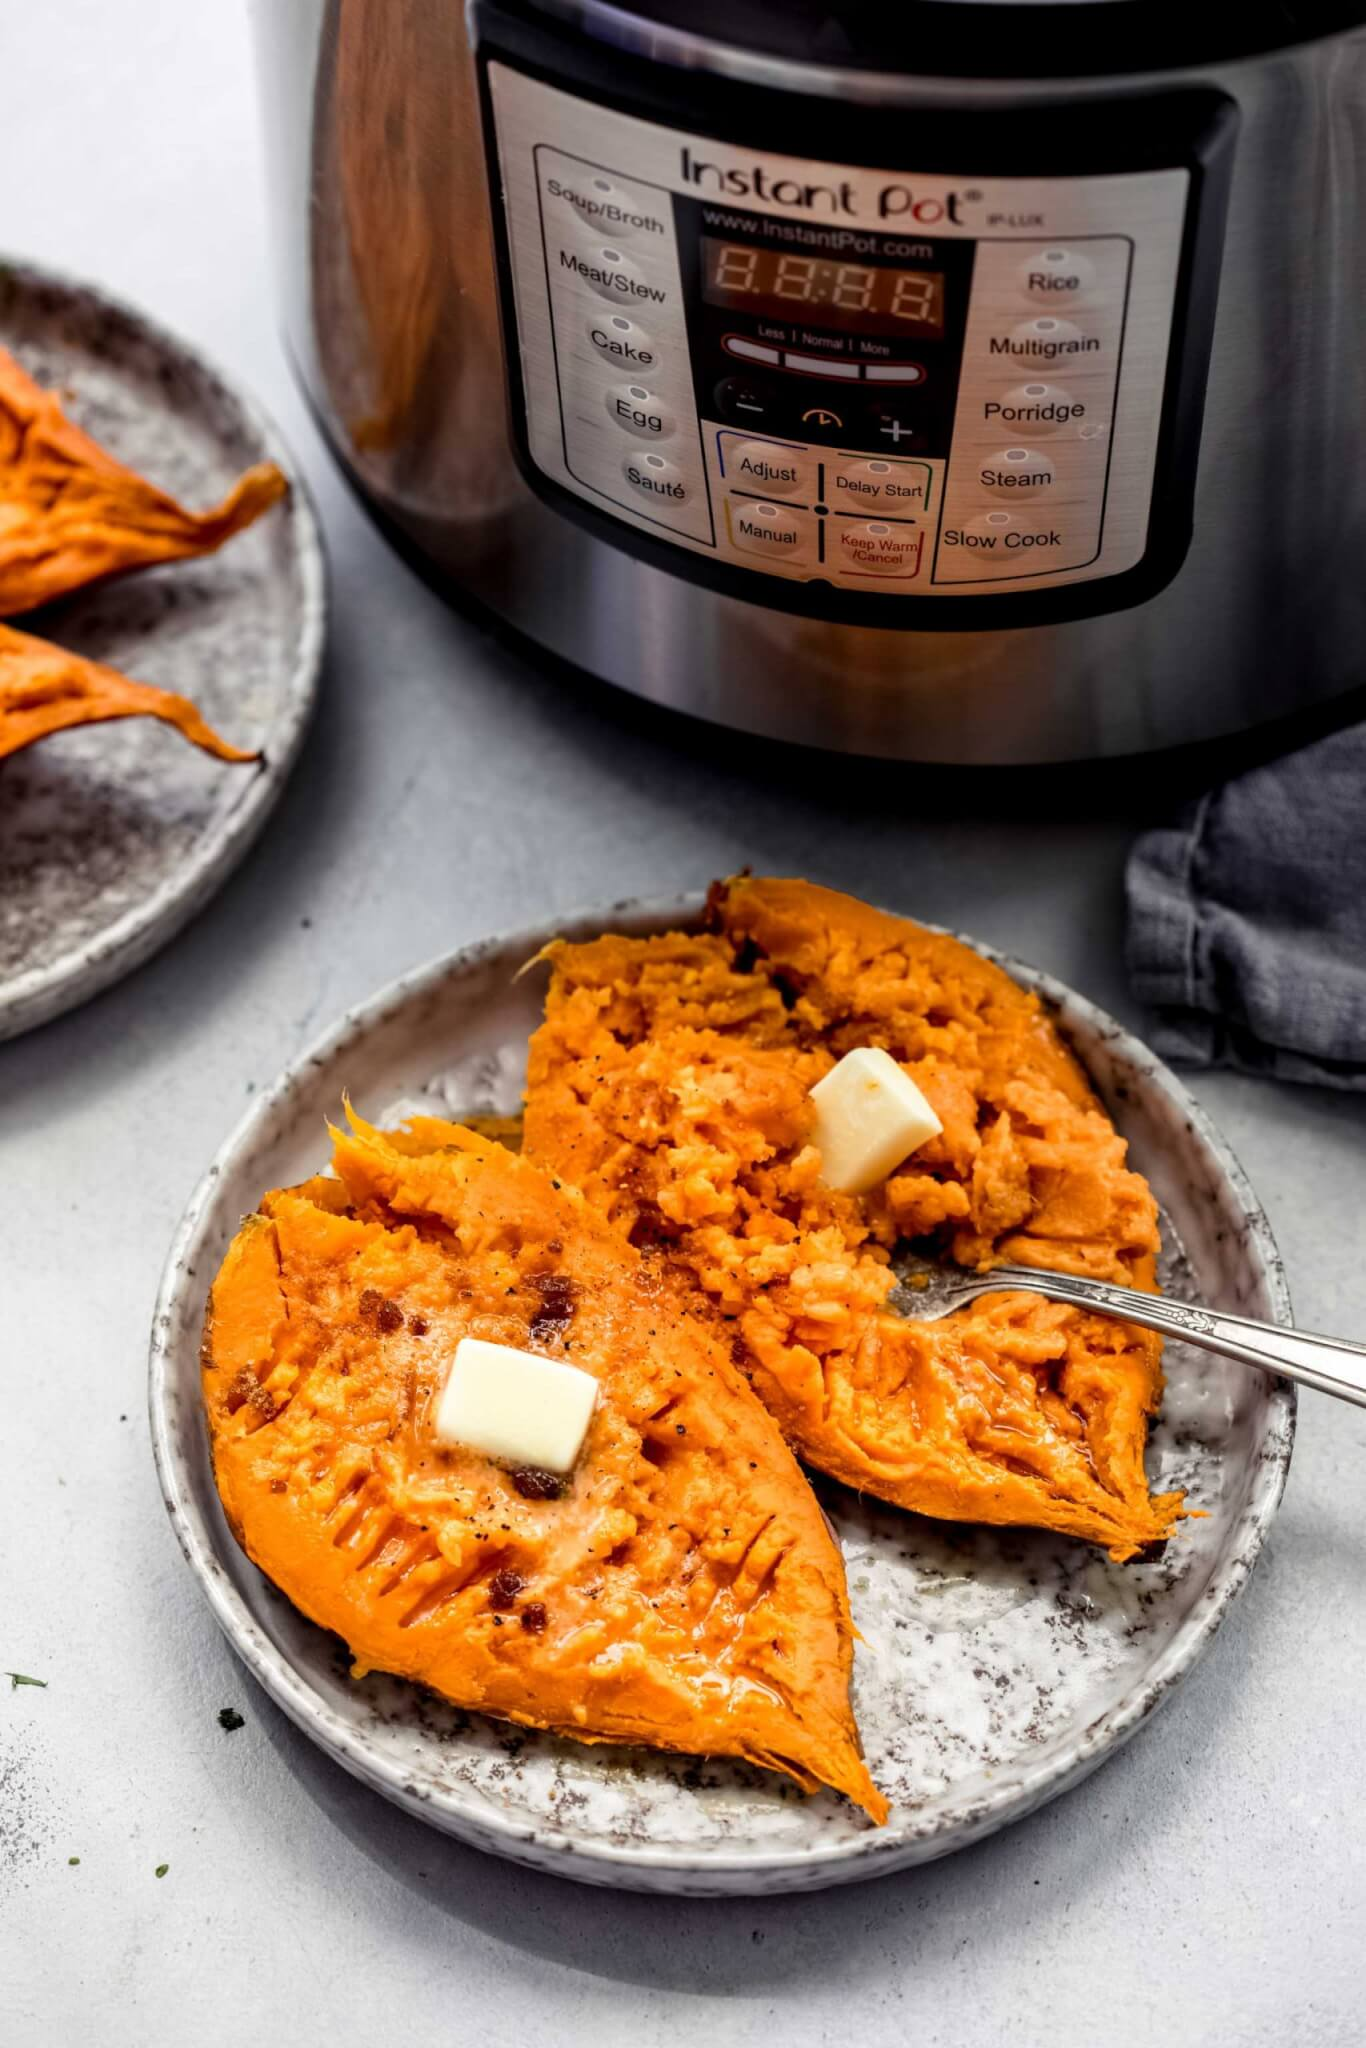 Split open sweet potato on grey plate with pats of butter and fork next to instant pot.